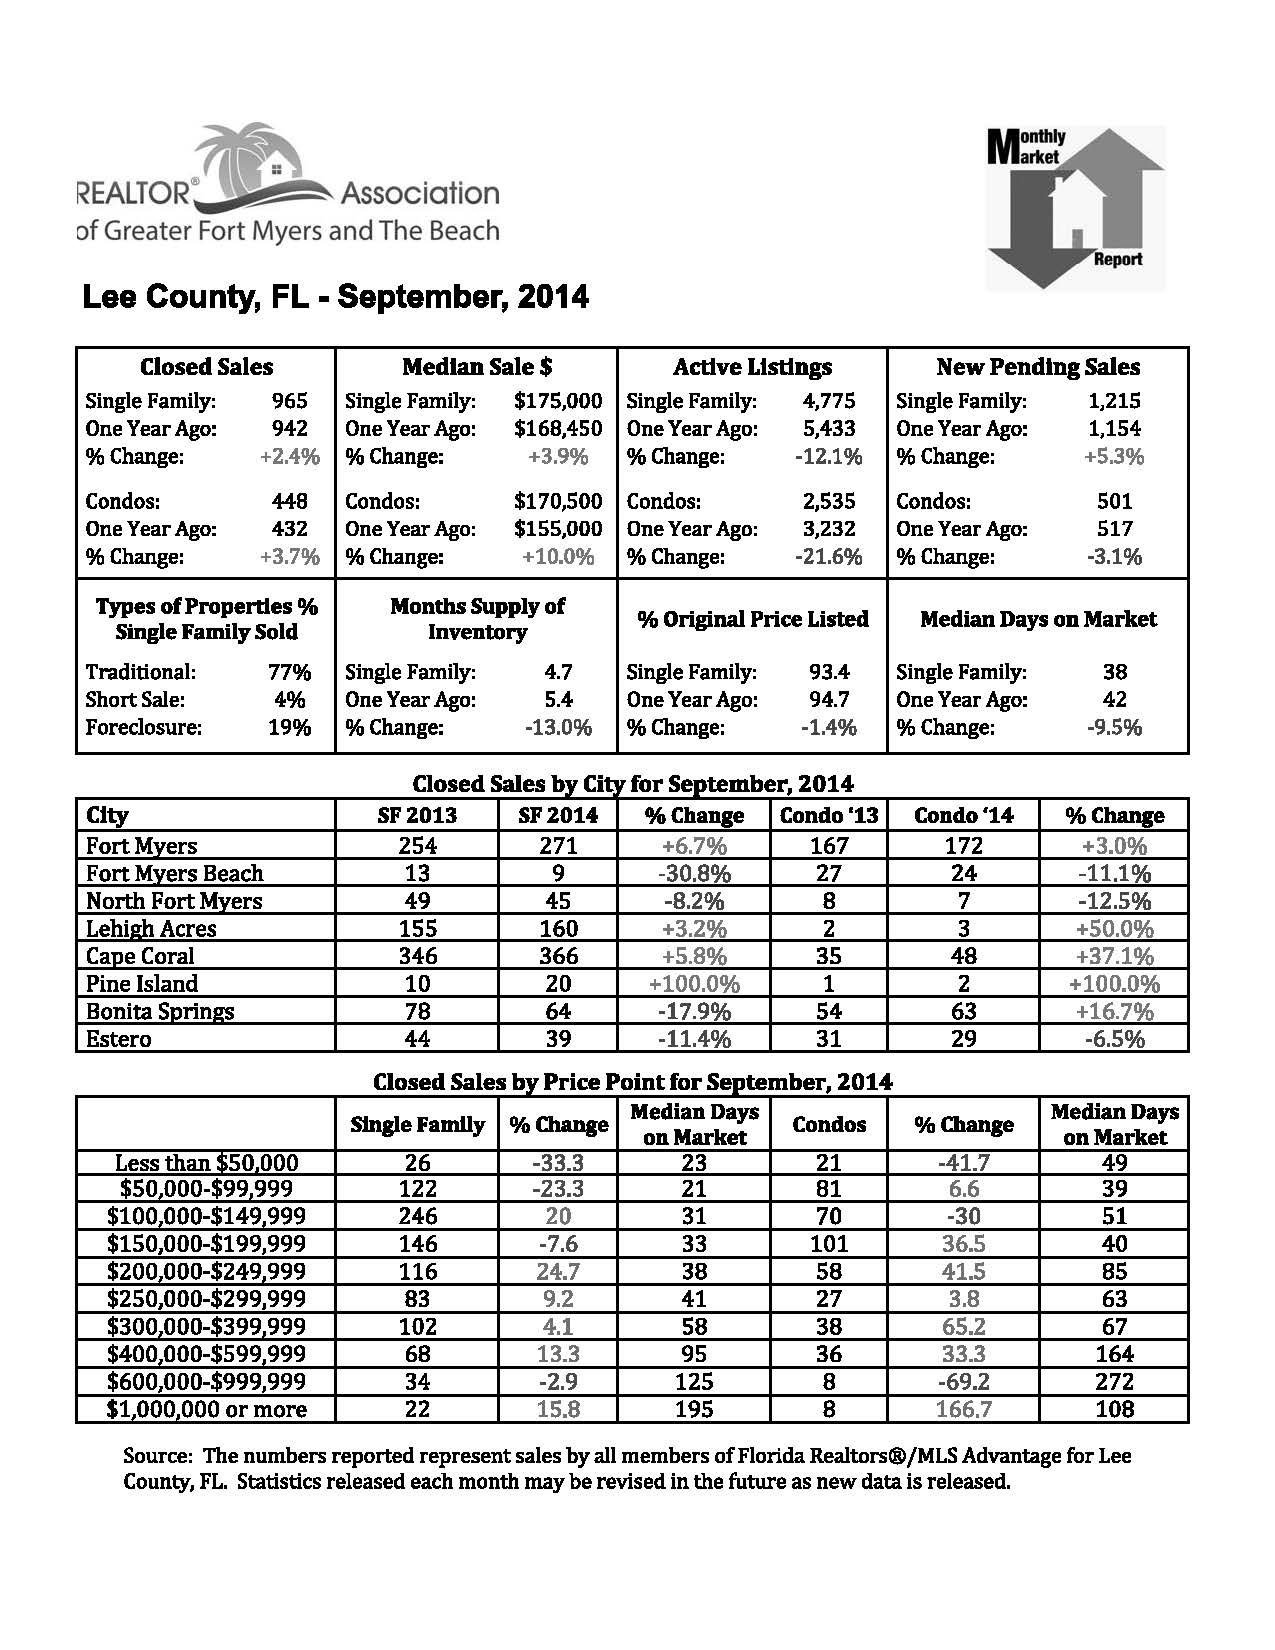 Penny Lehmann Coldwell Banker Top Producer in Cape Coral shares Real Estate Reports